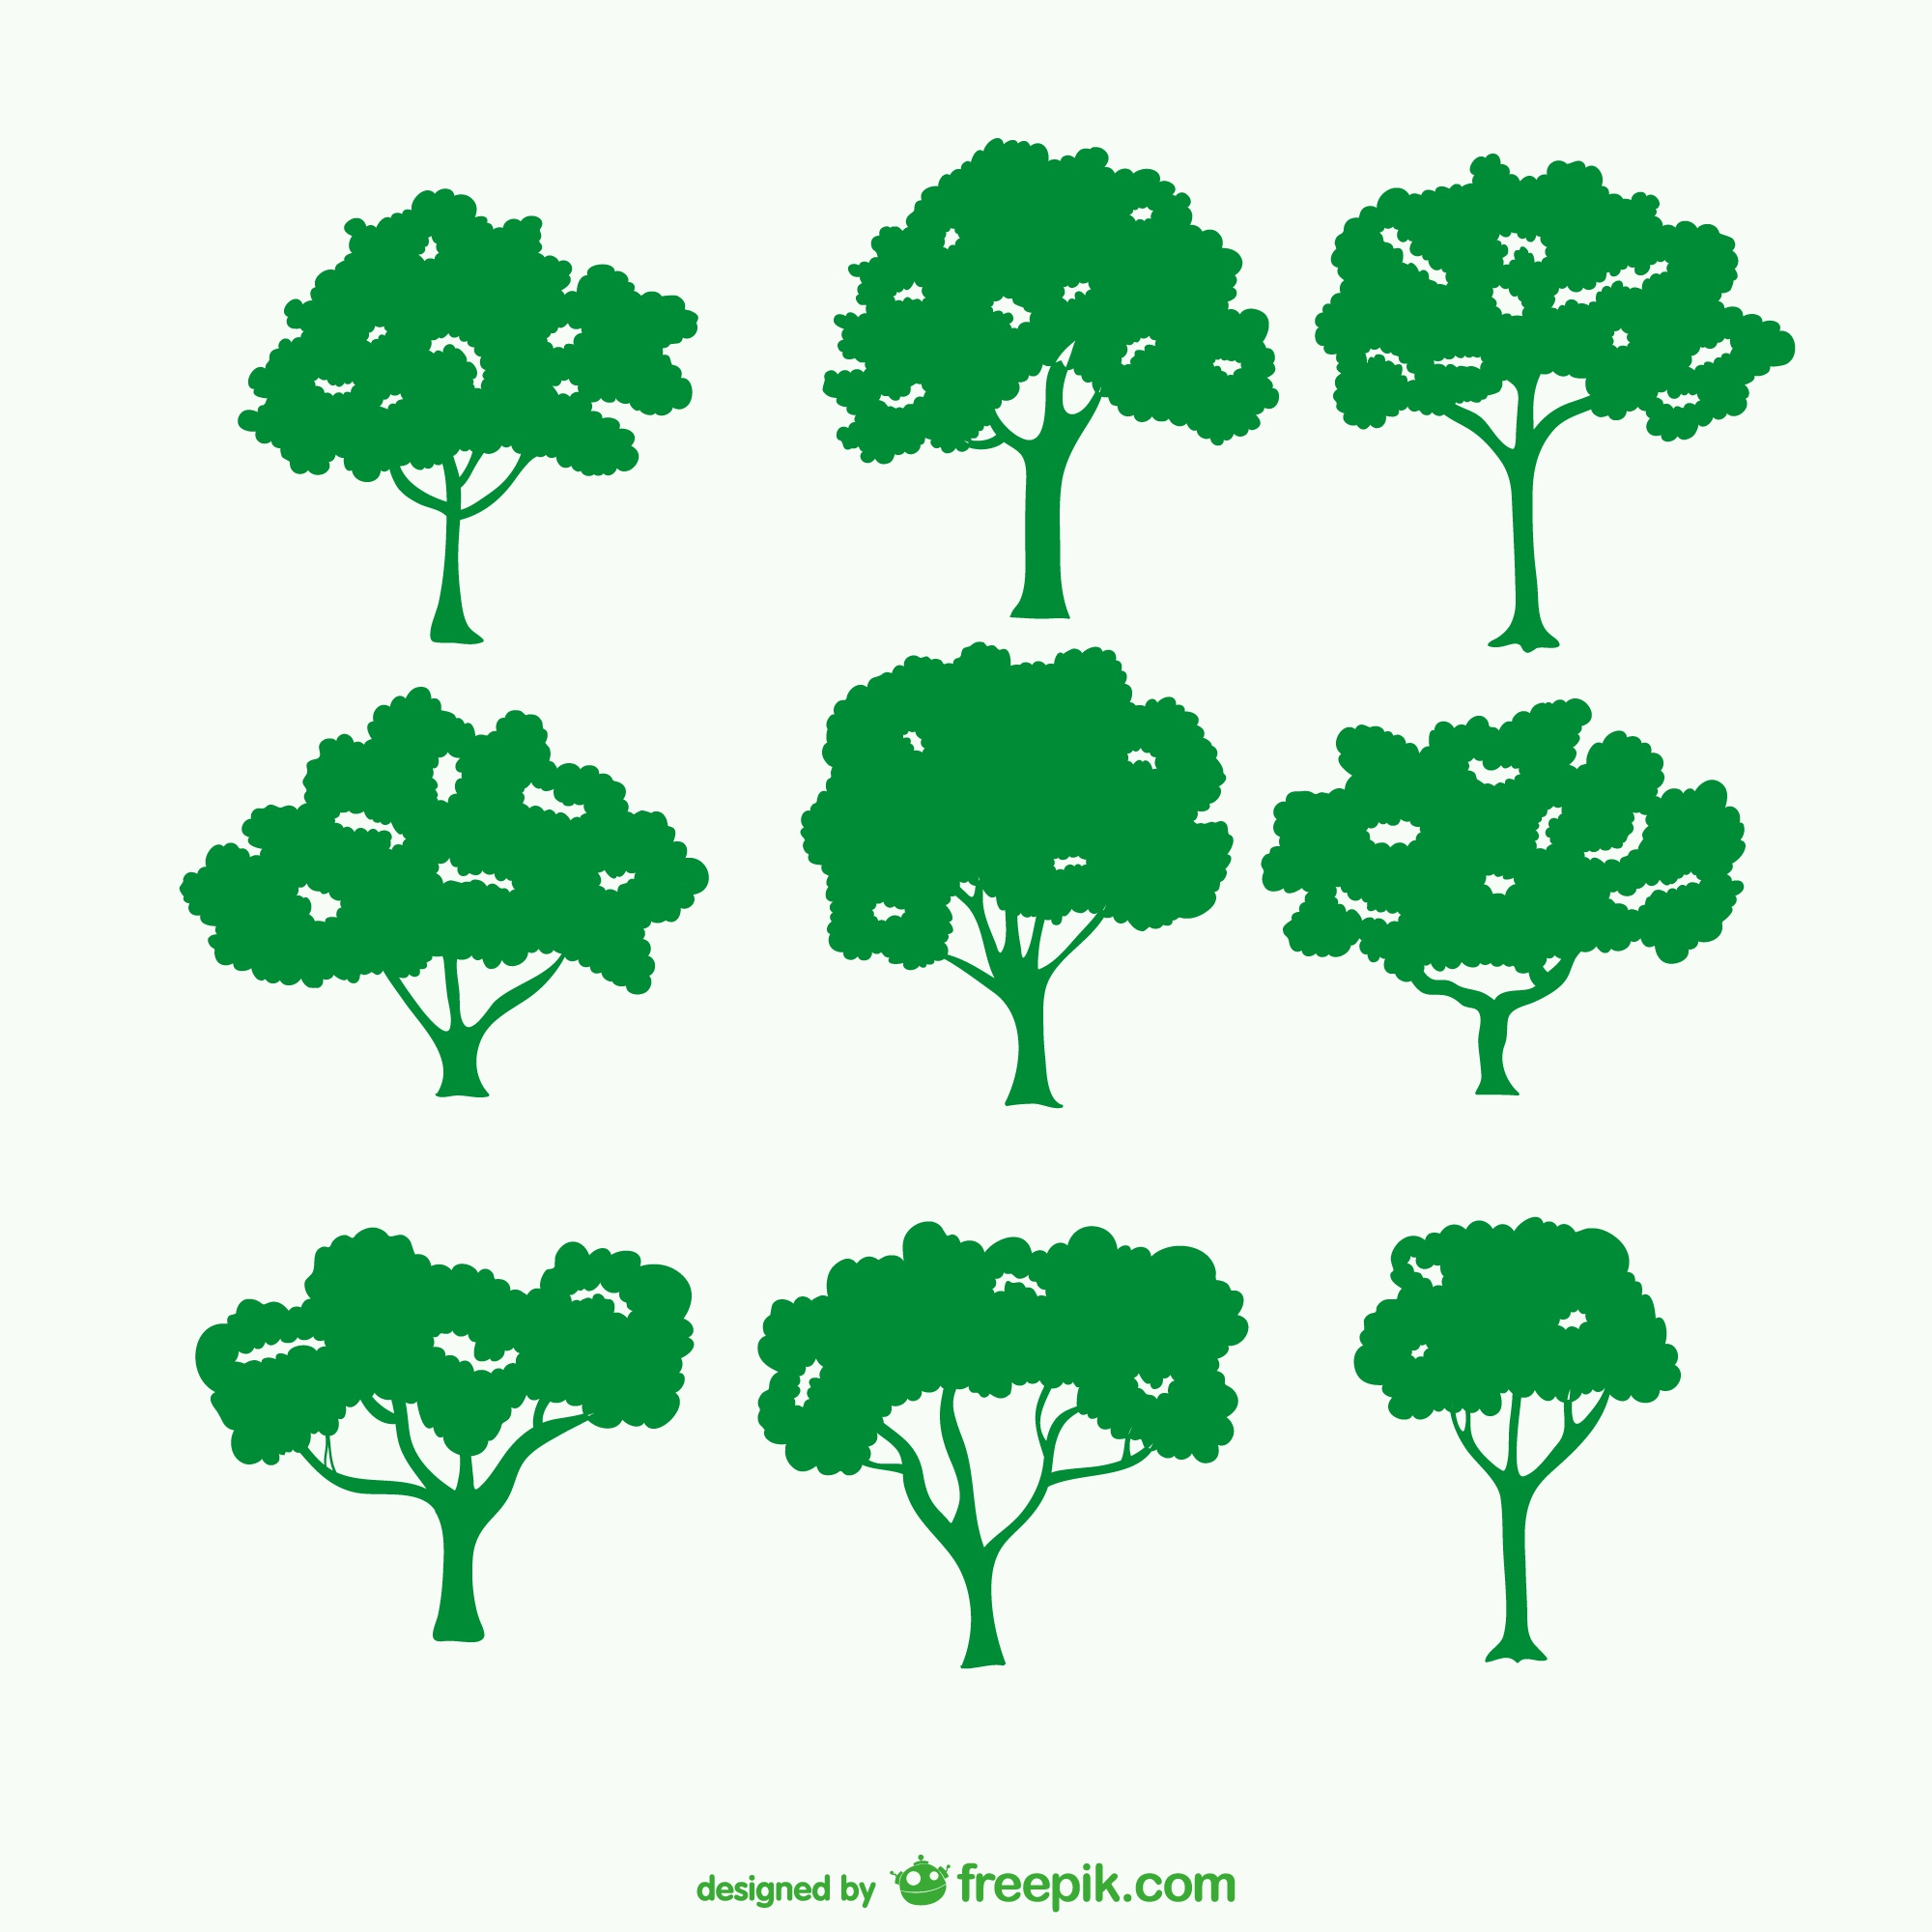 Green tree silhouette vectors